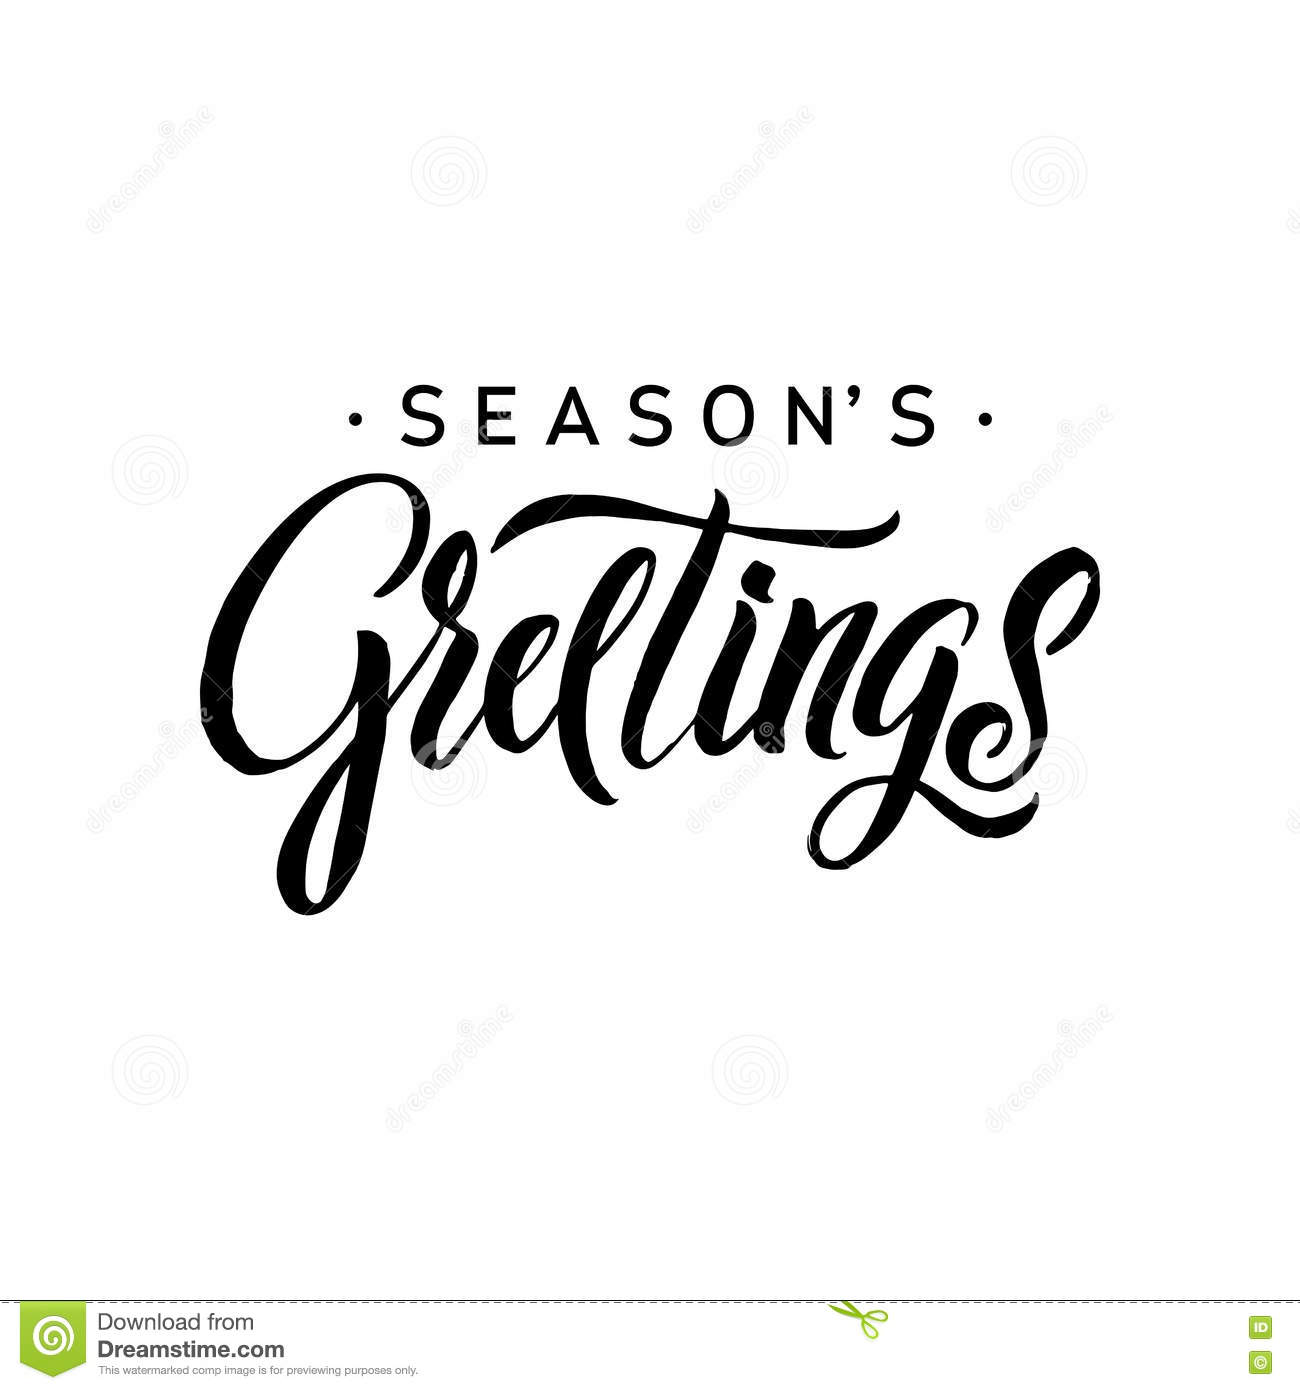 Seasons greetings calligraphy greeting card typography on seasons greetings calligraphy greeting card typography on background inscription banner kristyandbryce Choice Image